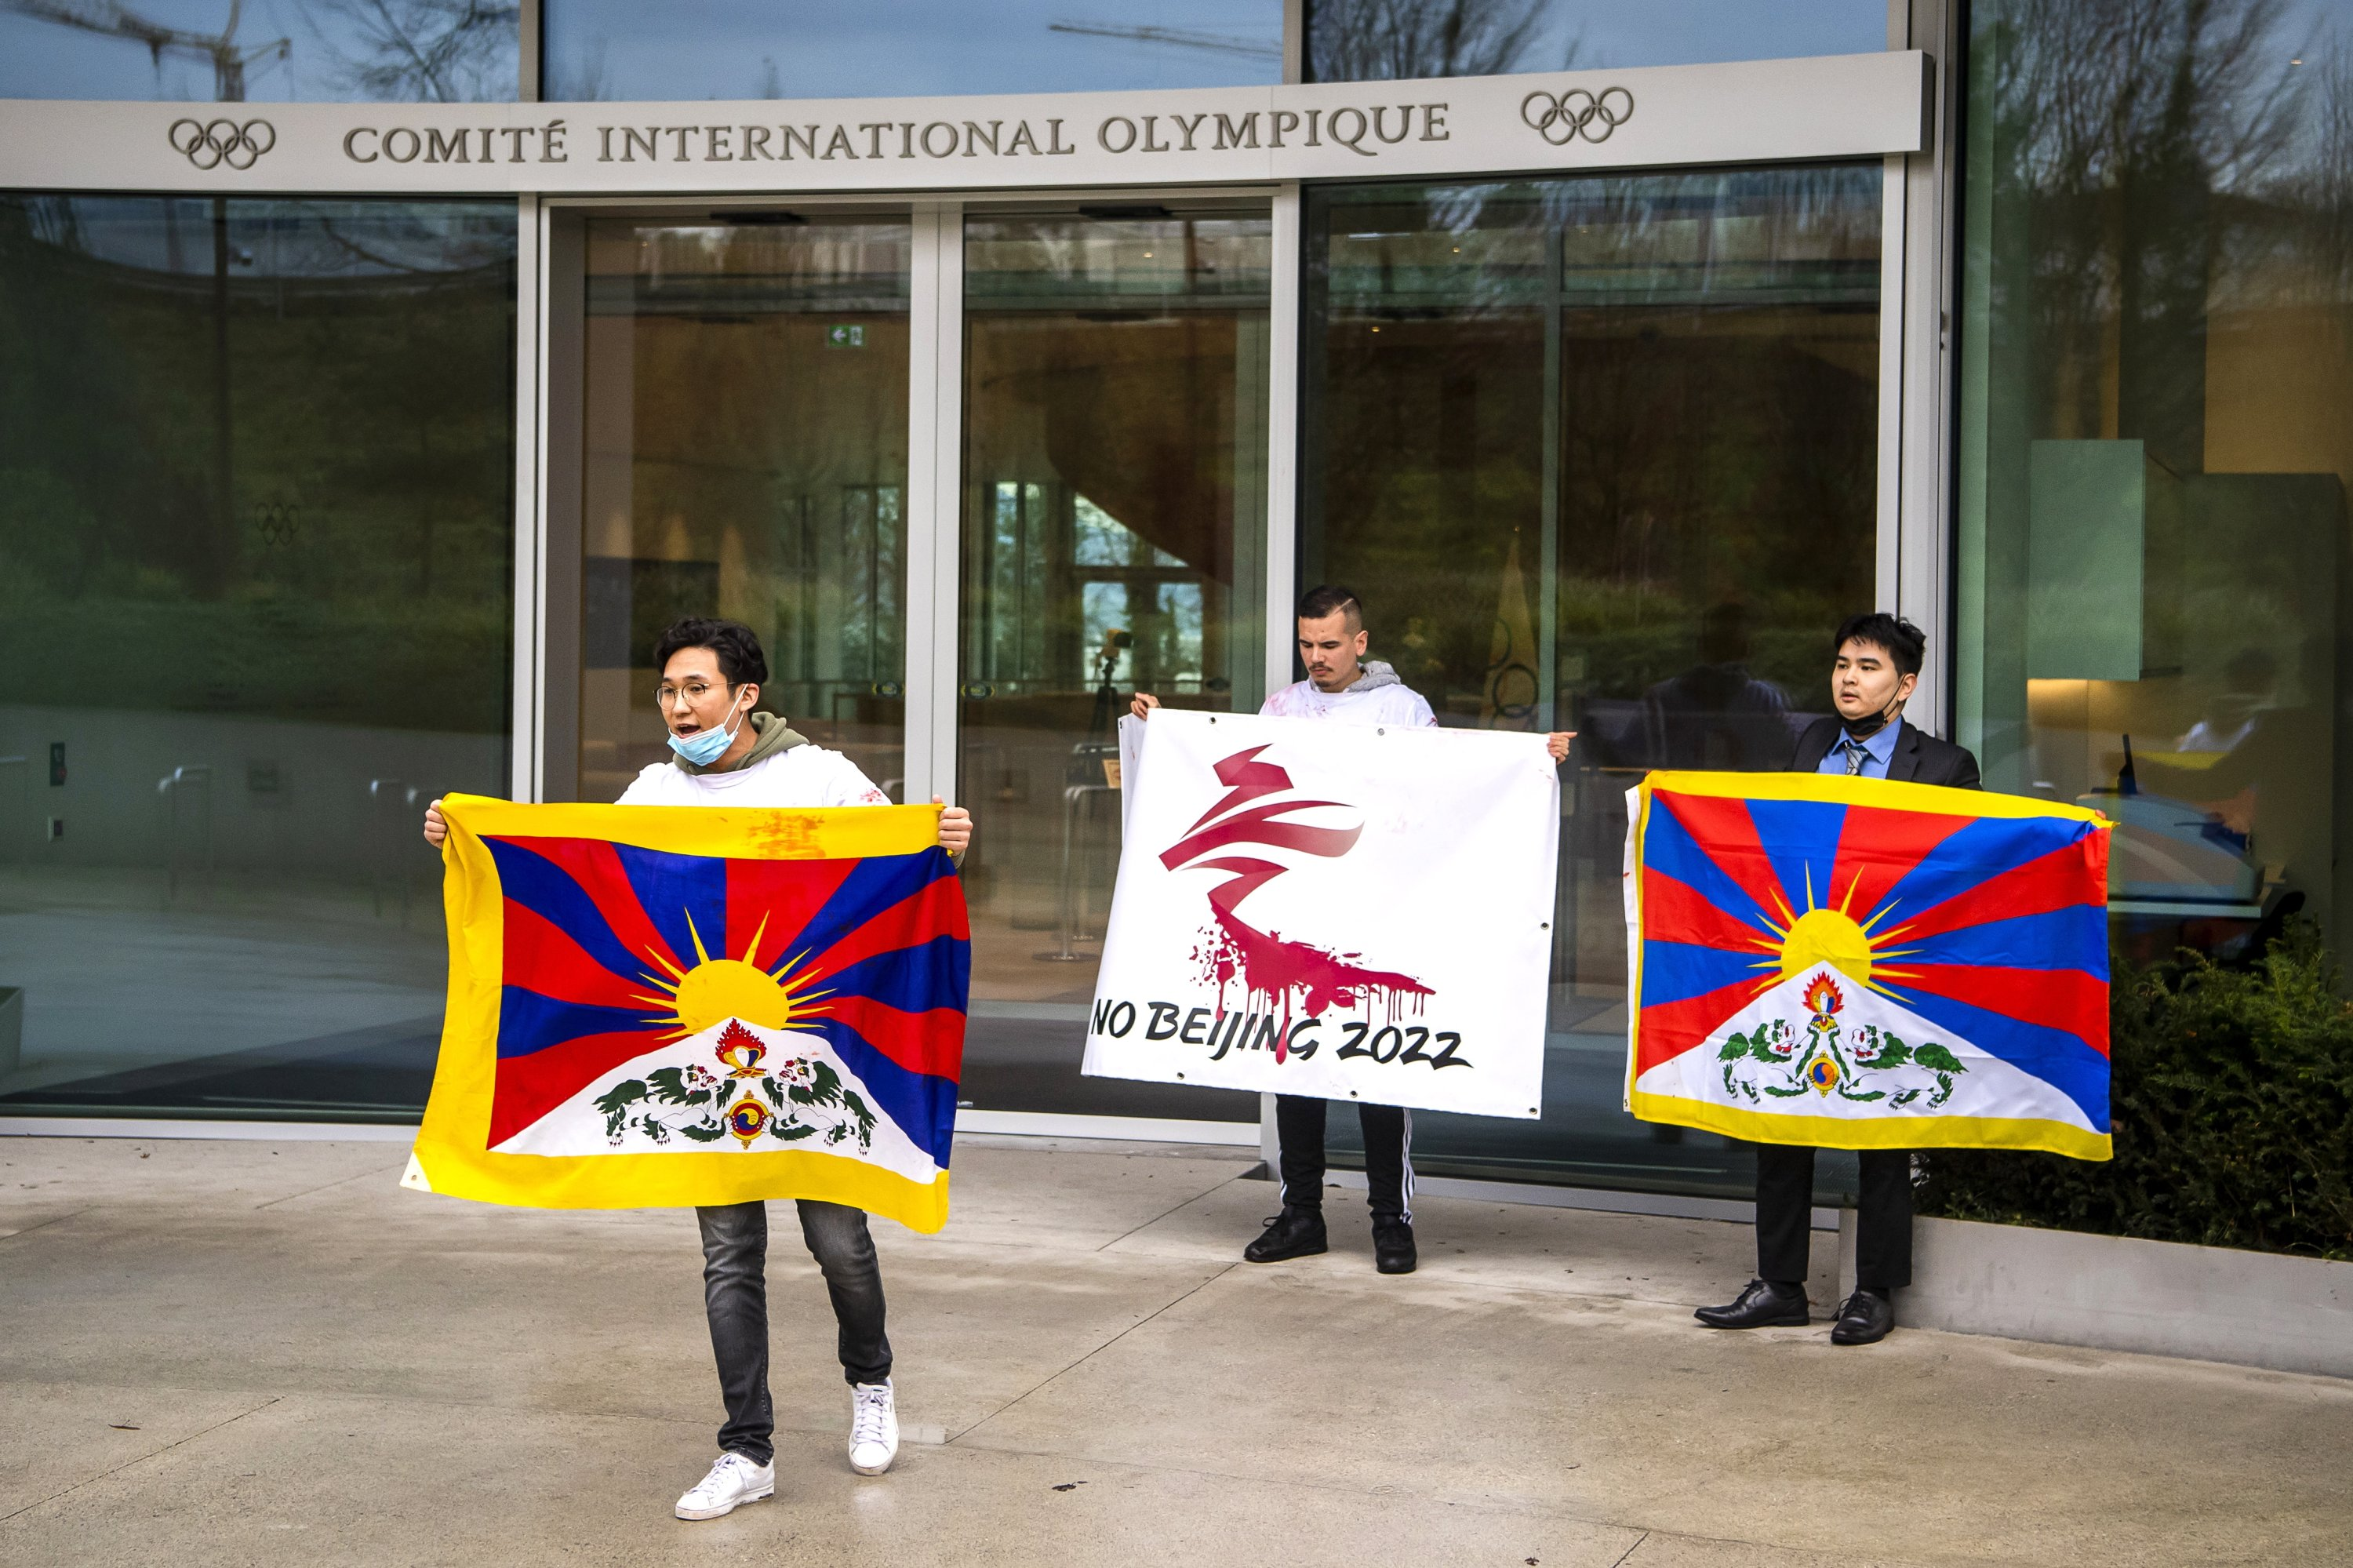 Protesters hold Tibetan flags during a protest against the Beijing 2022 Winter Olympic Games by activists of the Tibetan Youth Association in Europe in front of the International Olympic Committee (IOC) headquarters in Lausanne, Switzerland, Feb. 3, 2021. (EPA Photo)